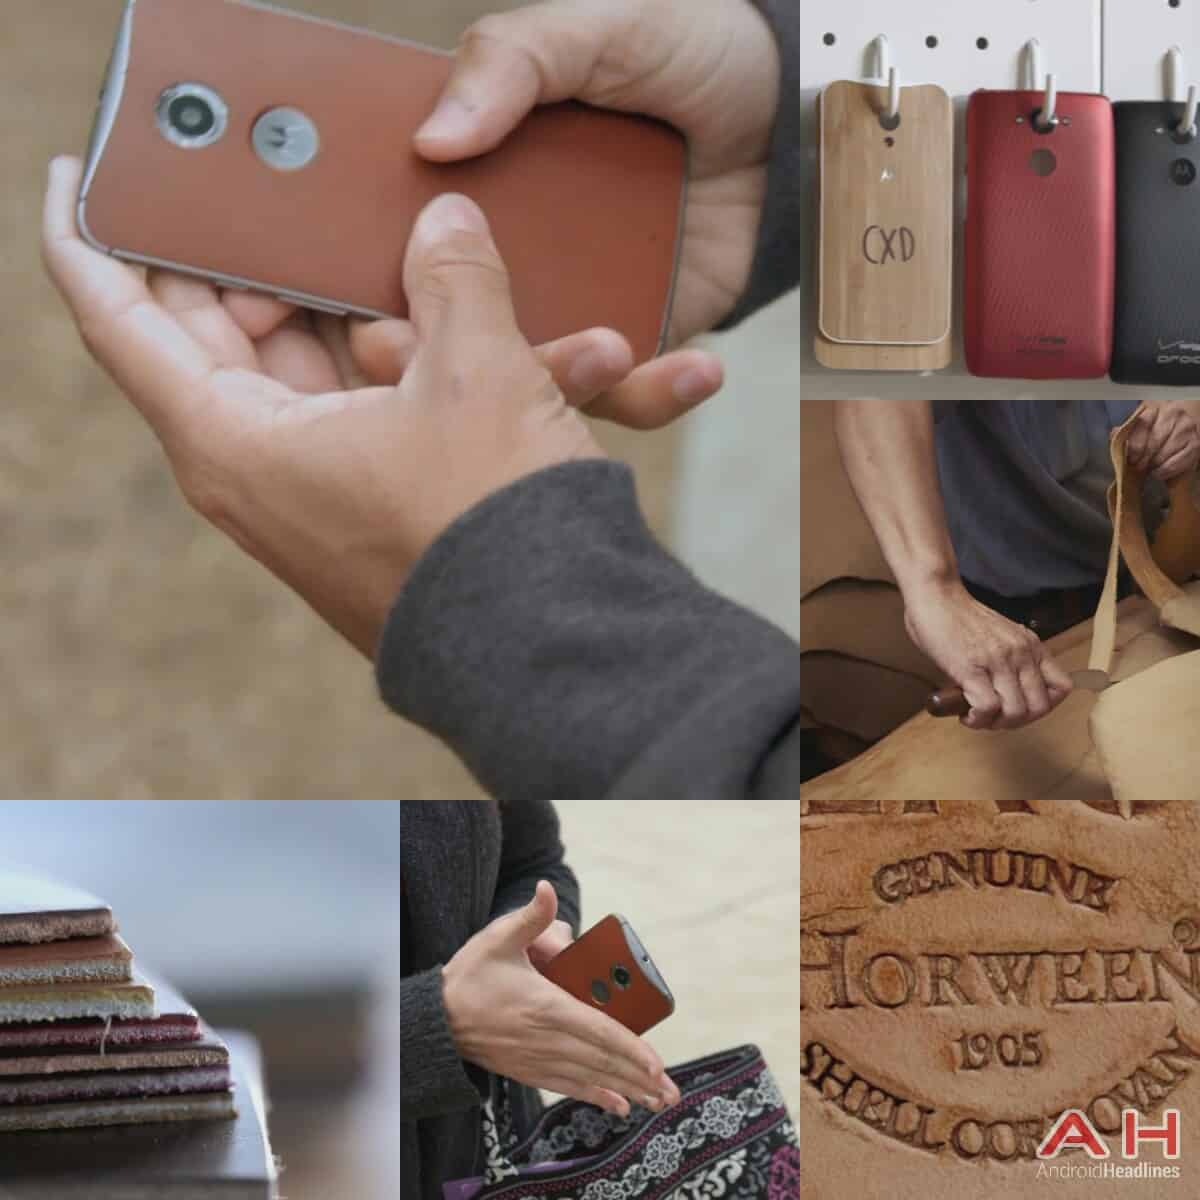 Motorola wood and leather YouTube promo video